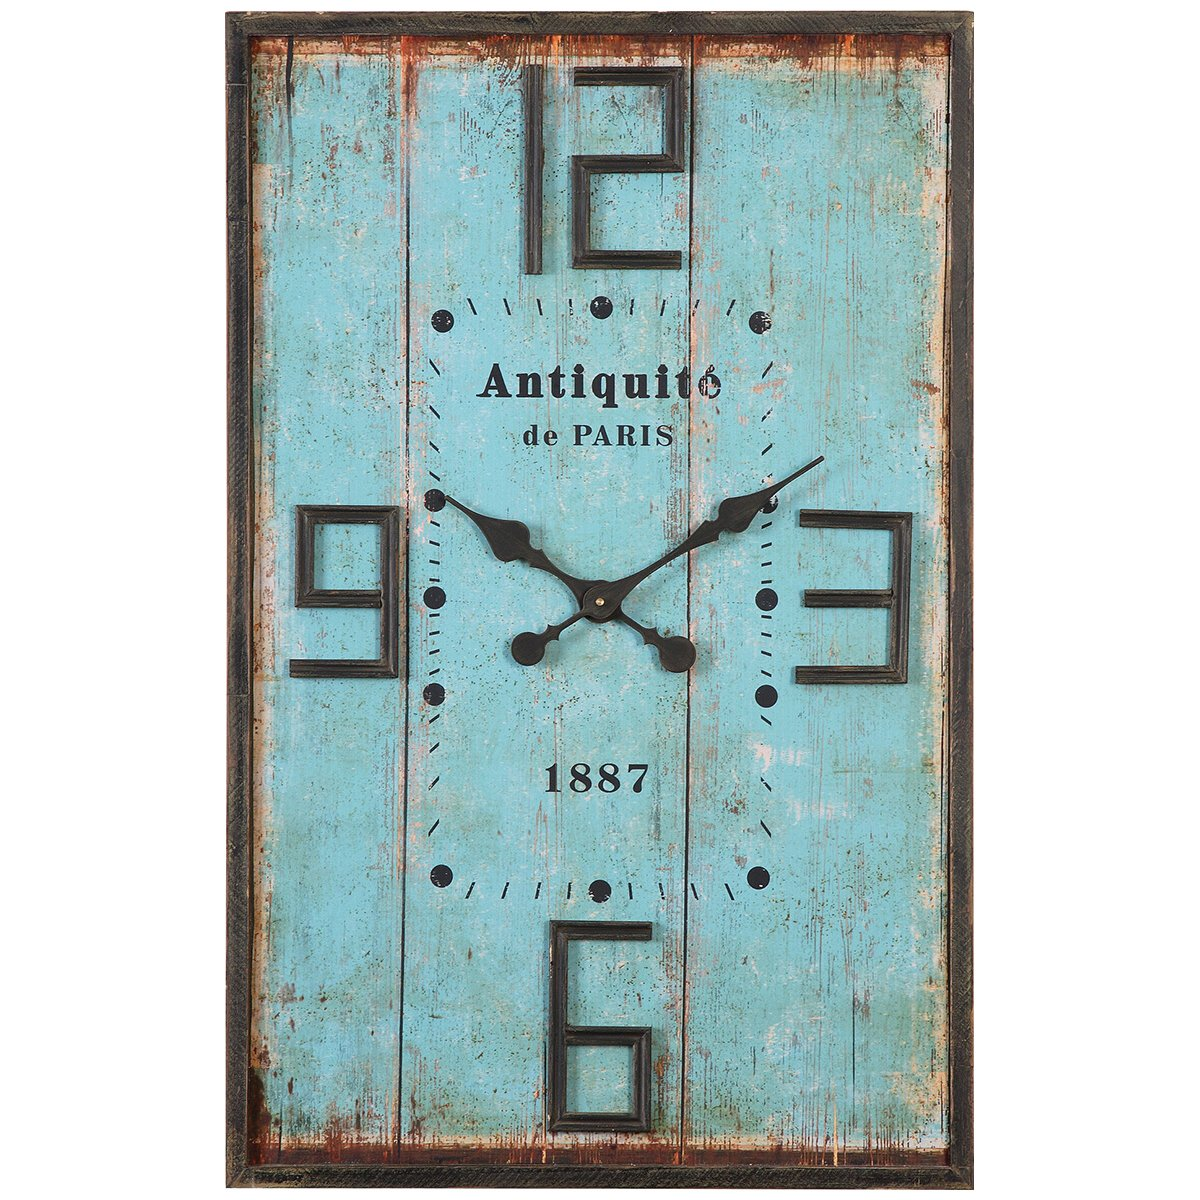 Amazon uttermost 06425 6425 antiquite distressed wall clock amazon uttermost 06425 6425 antiquite distressed wall clock home kitchen amipublicfo Image collections